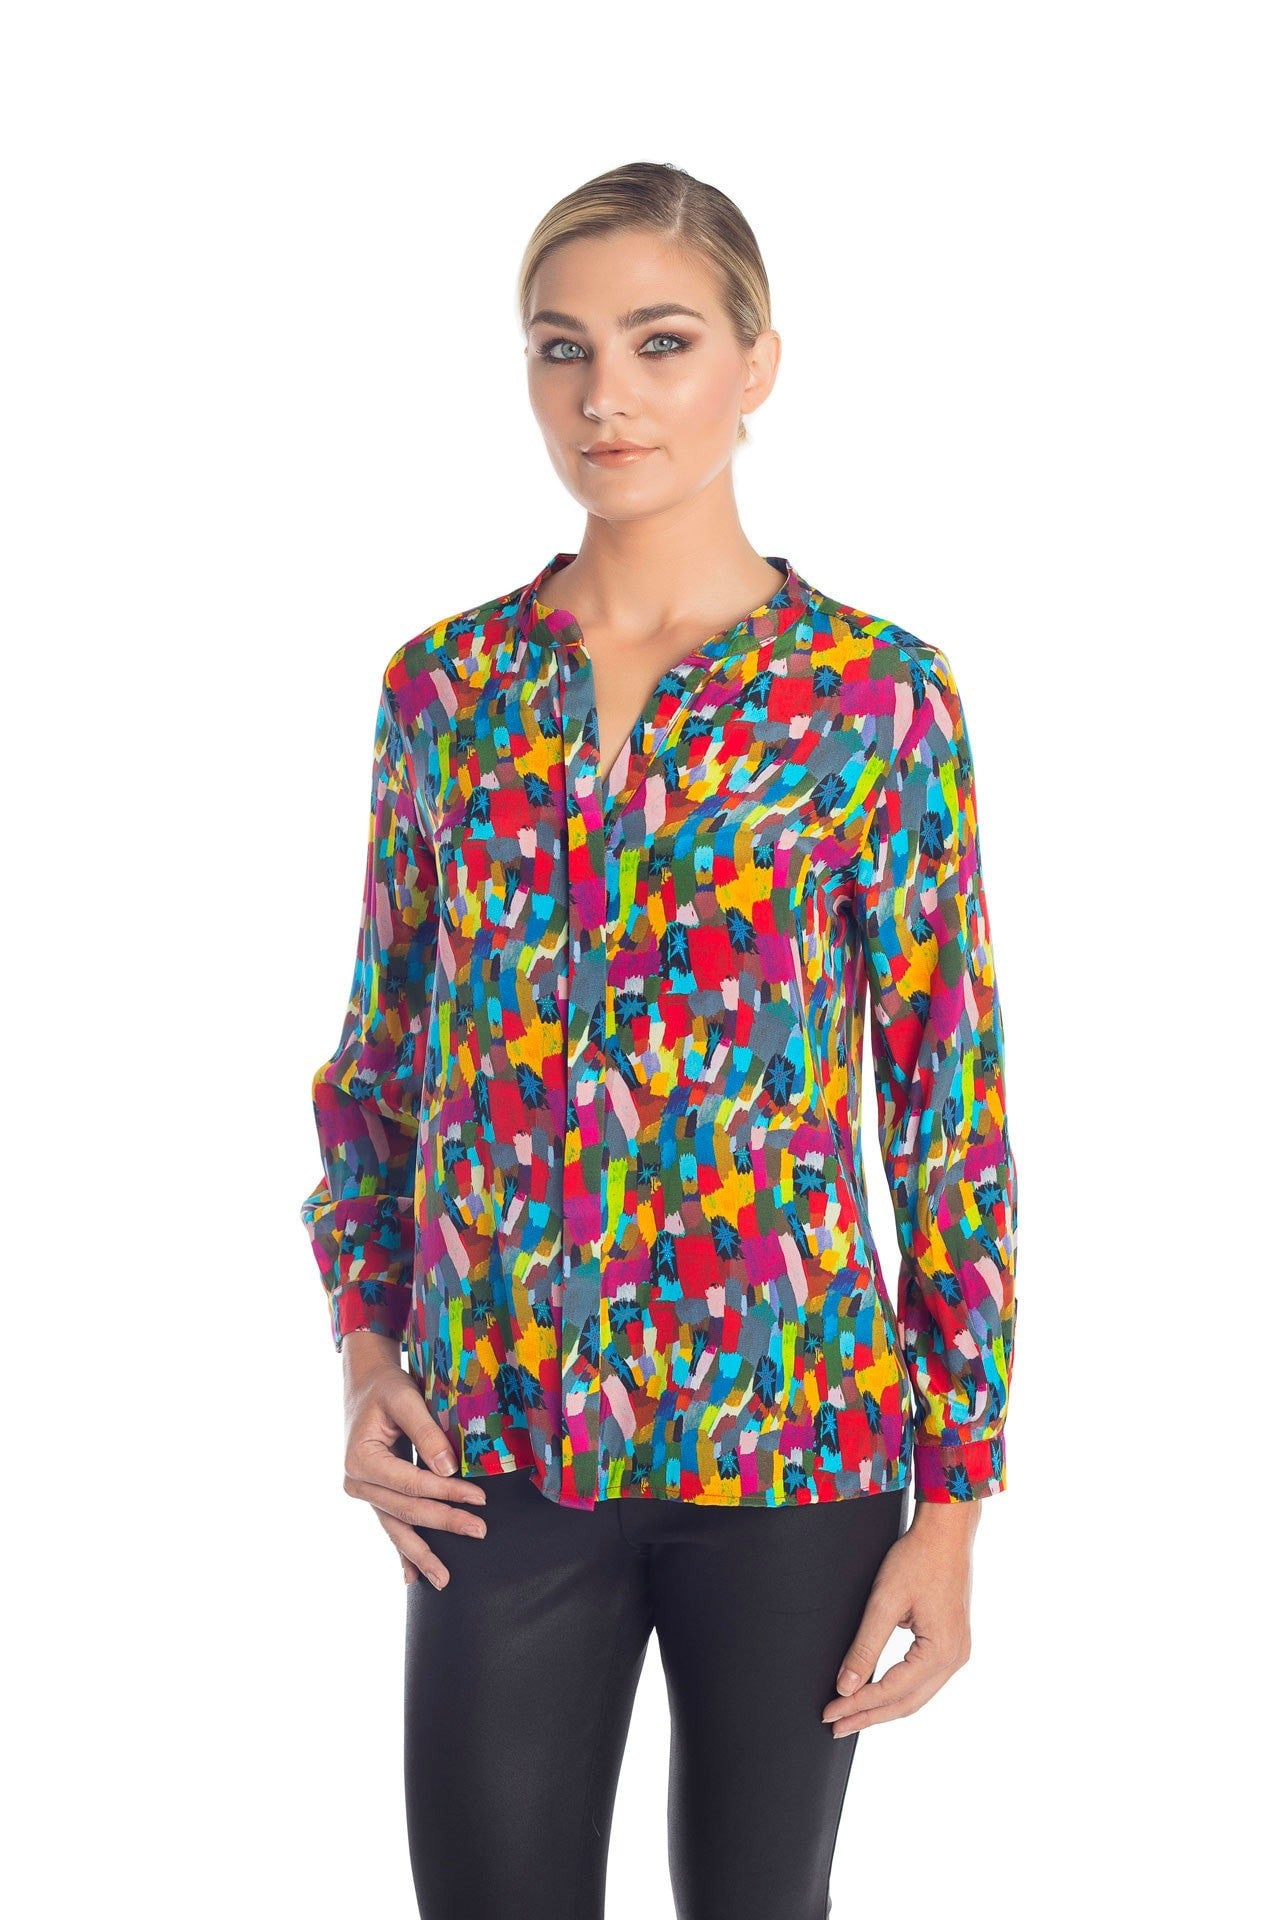 Muse Silk Blouse - Color Star Print Blouses - artTECA